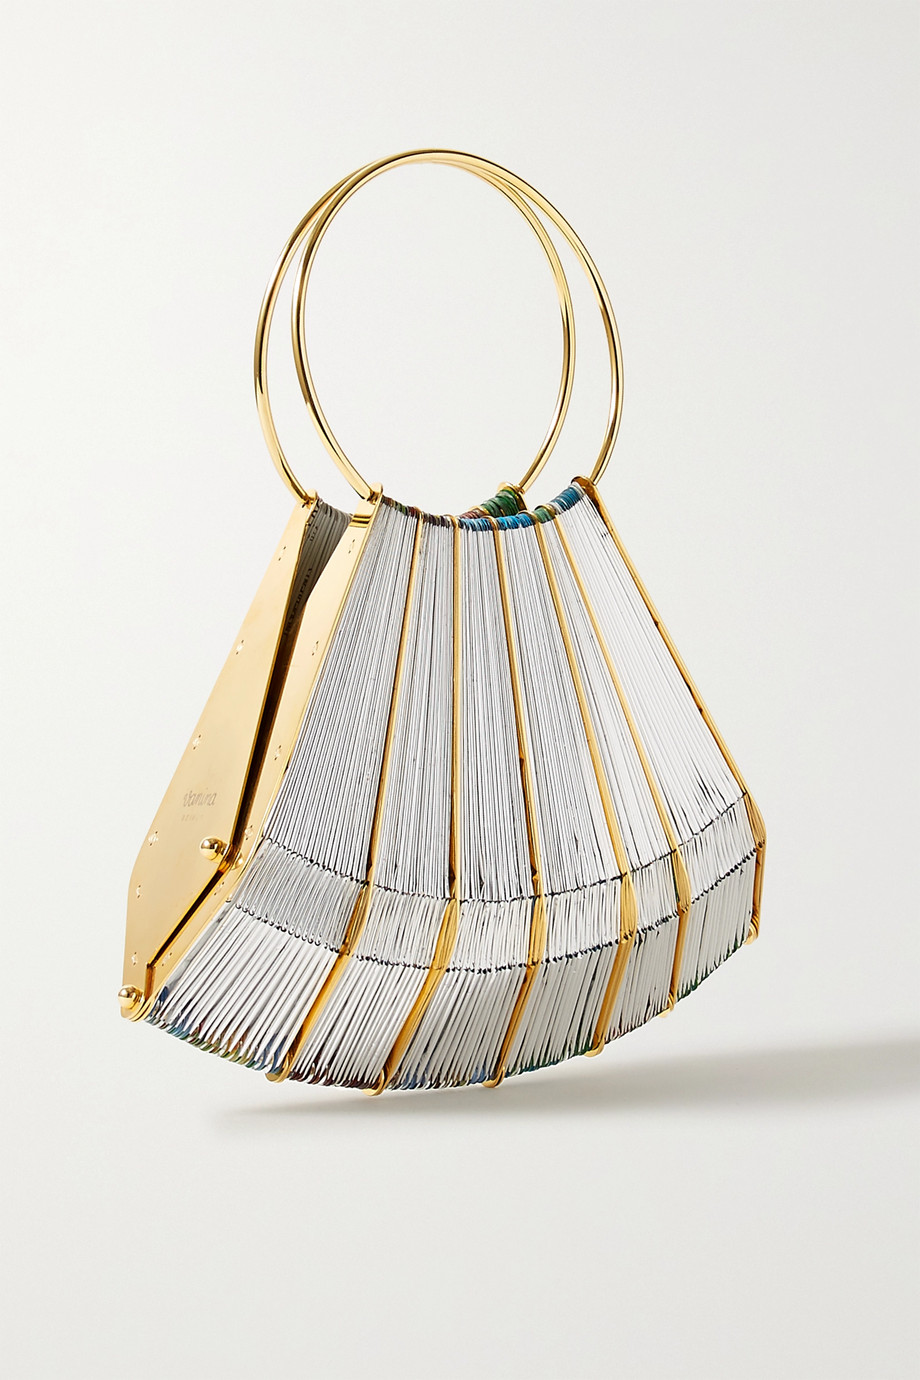 Vanina Le Vol Au Vent gold-plated and woven tote